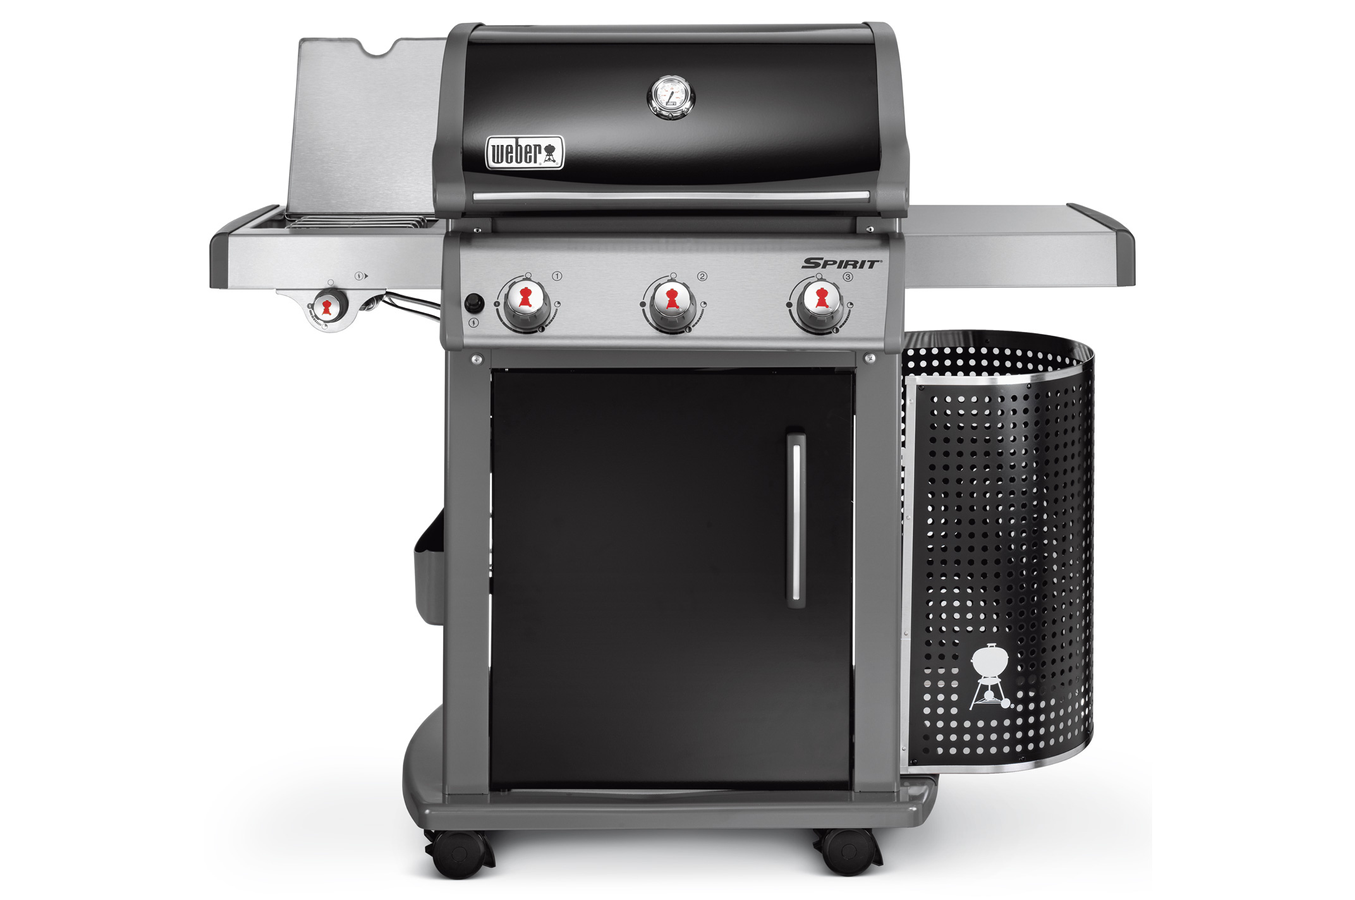 Barbecue weber gaz darty - Barbecue weber a gaz ...